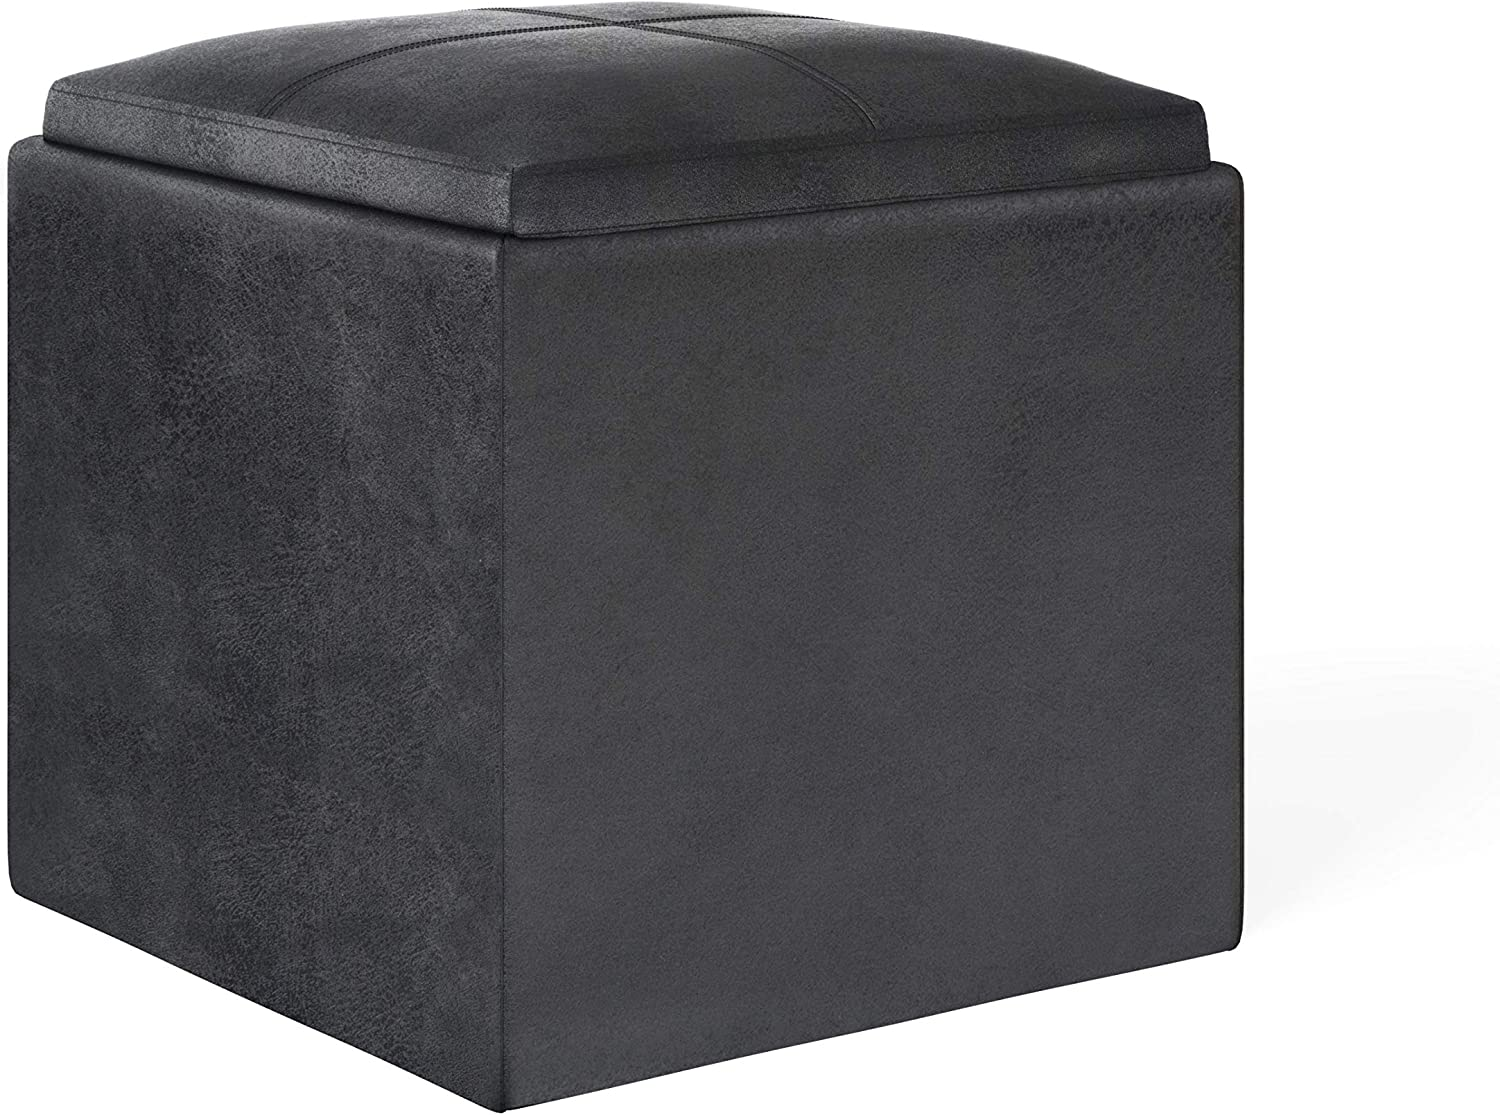 SIMPLIHOME Rockwood 17 inch Wide Contemporary Square Cube Storage Ottoman with Tray in Distressed Black Faux Air Leather